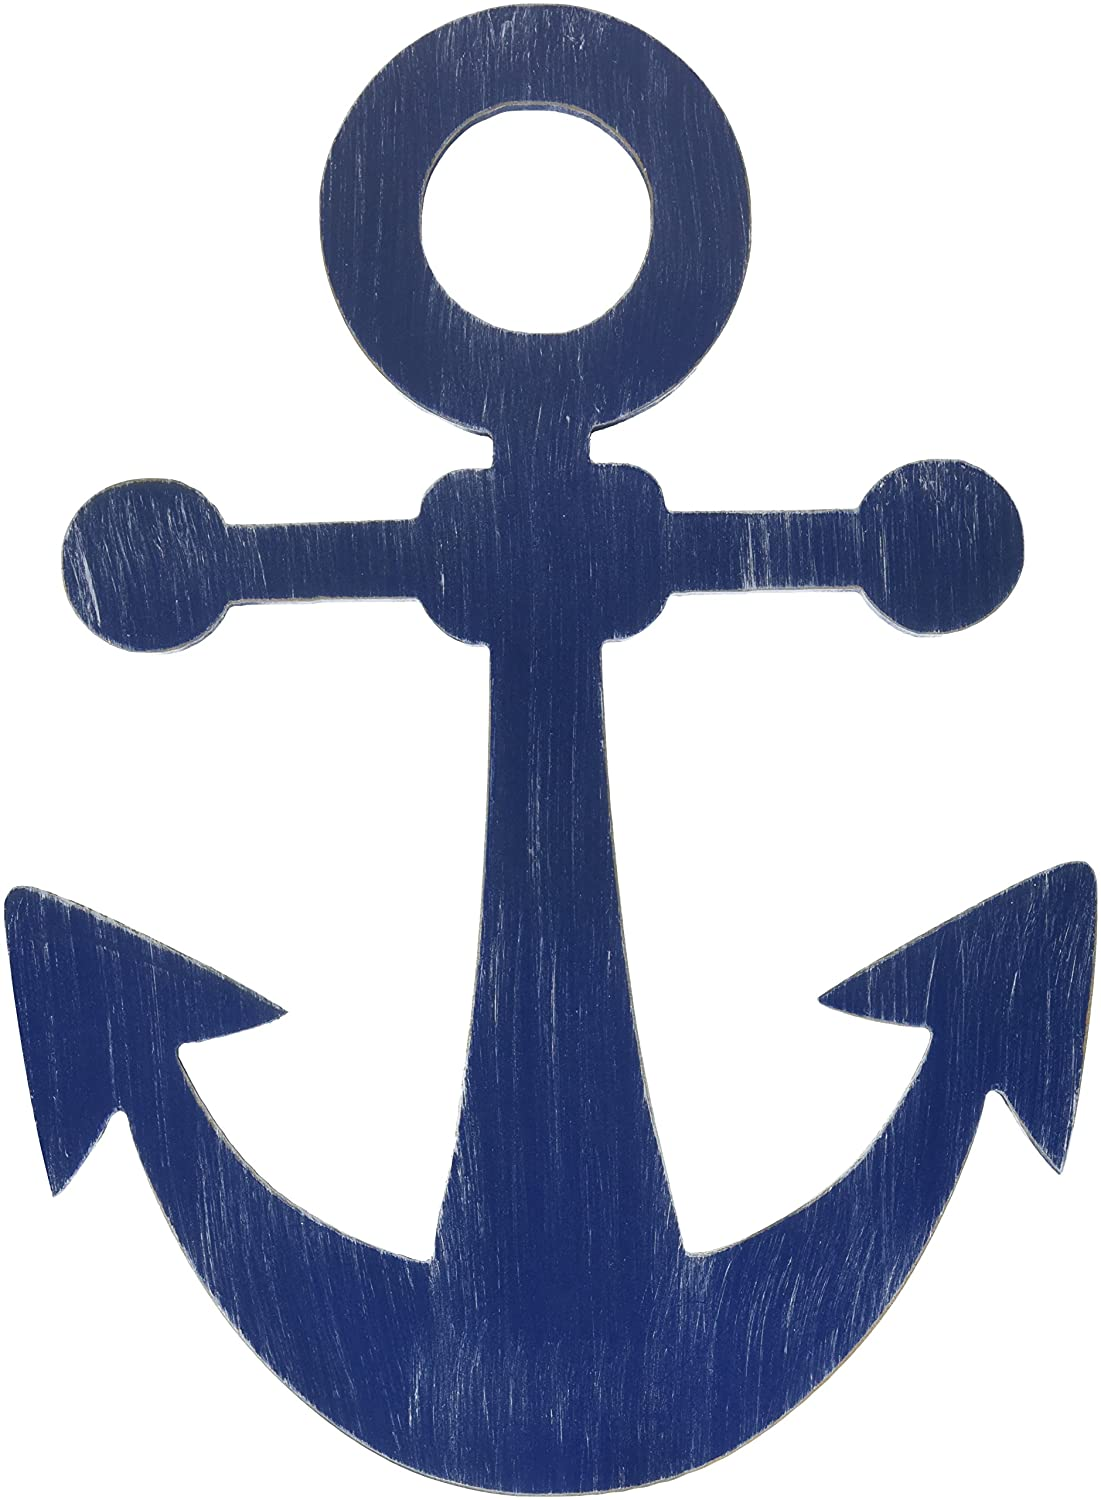 Little Love by NoJo Separates Collection 6 Piece Anchor Shaped Wall Art, Navy Crown Craft Infant Products 6603973